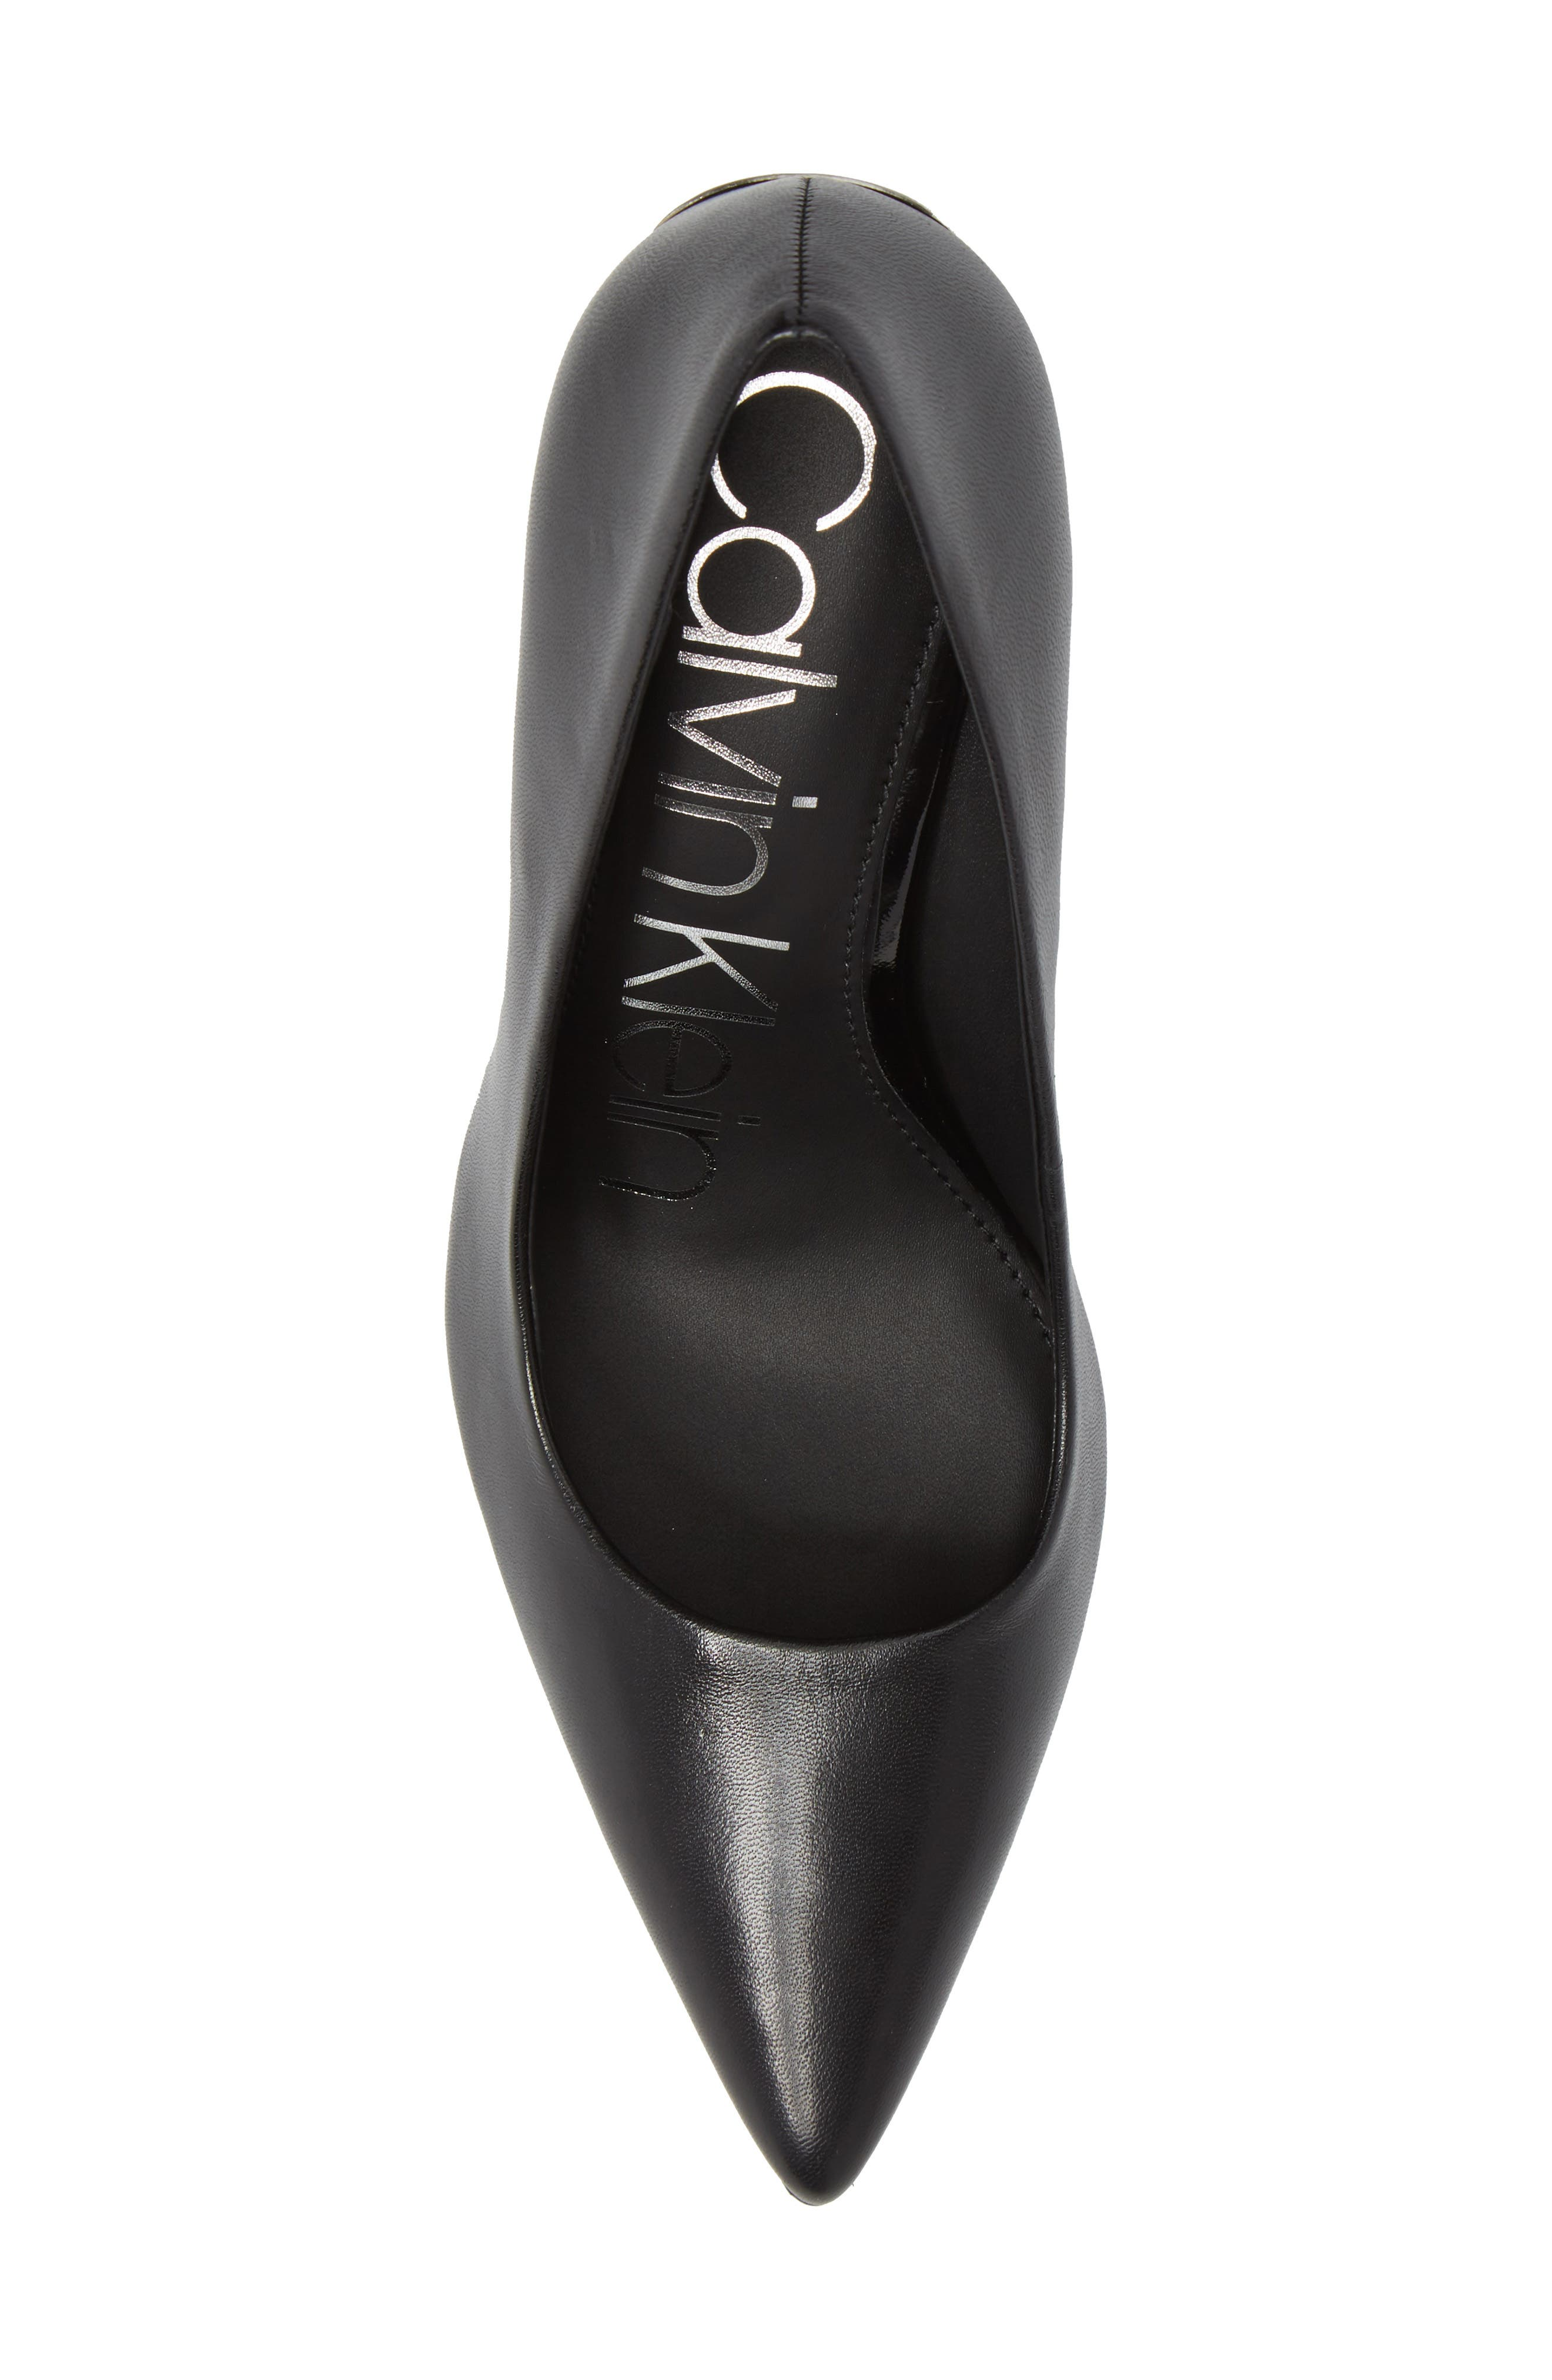 Ronna Pointy Toe Pump,                             Alternate thumbnail 5, color,                             BLACK LEATHER